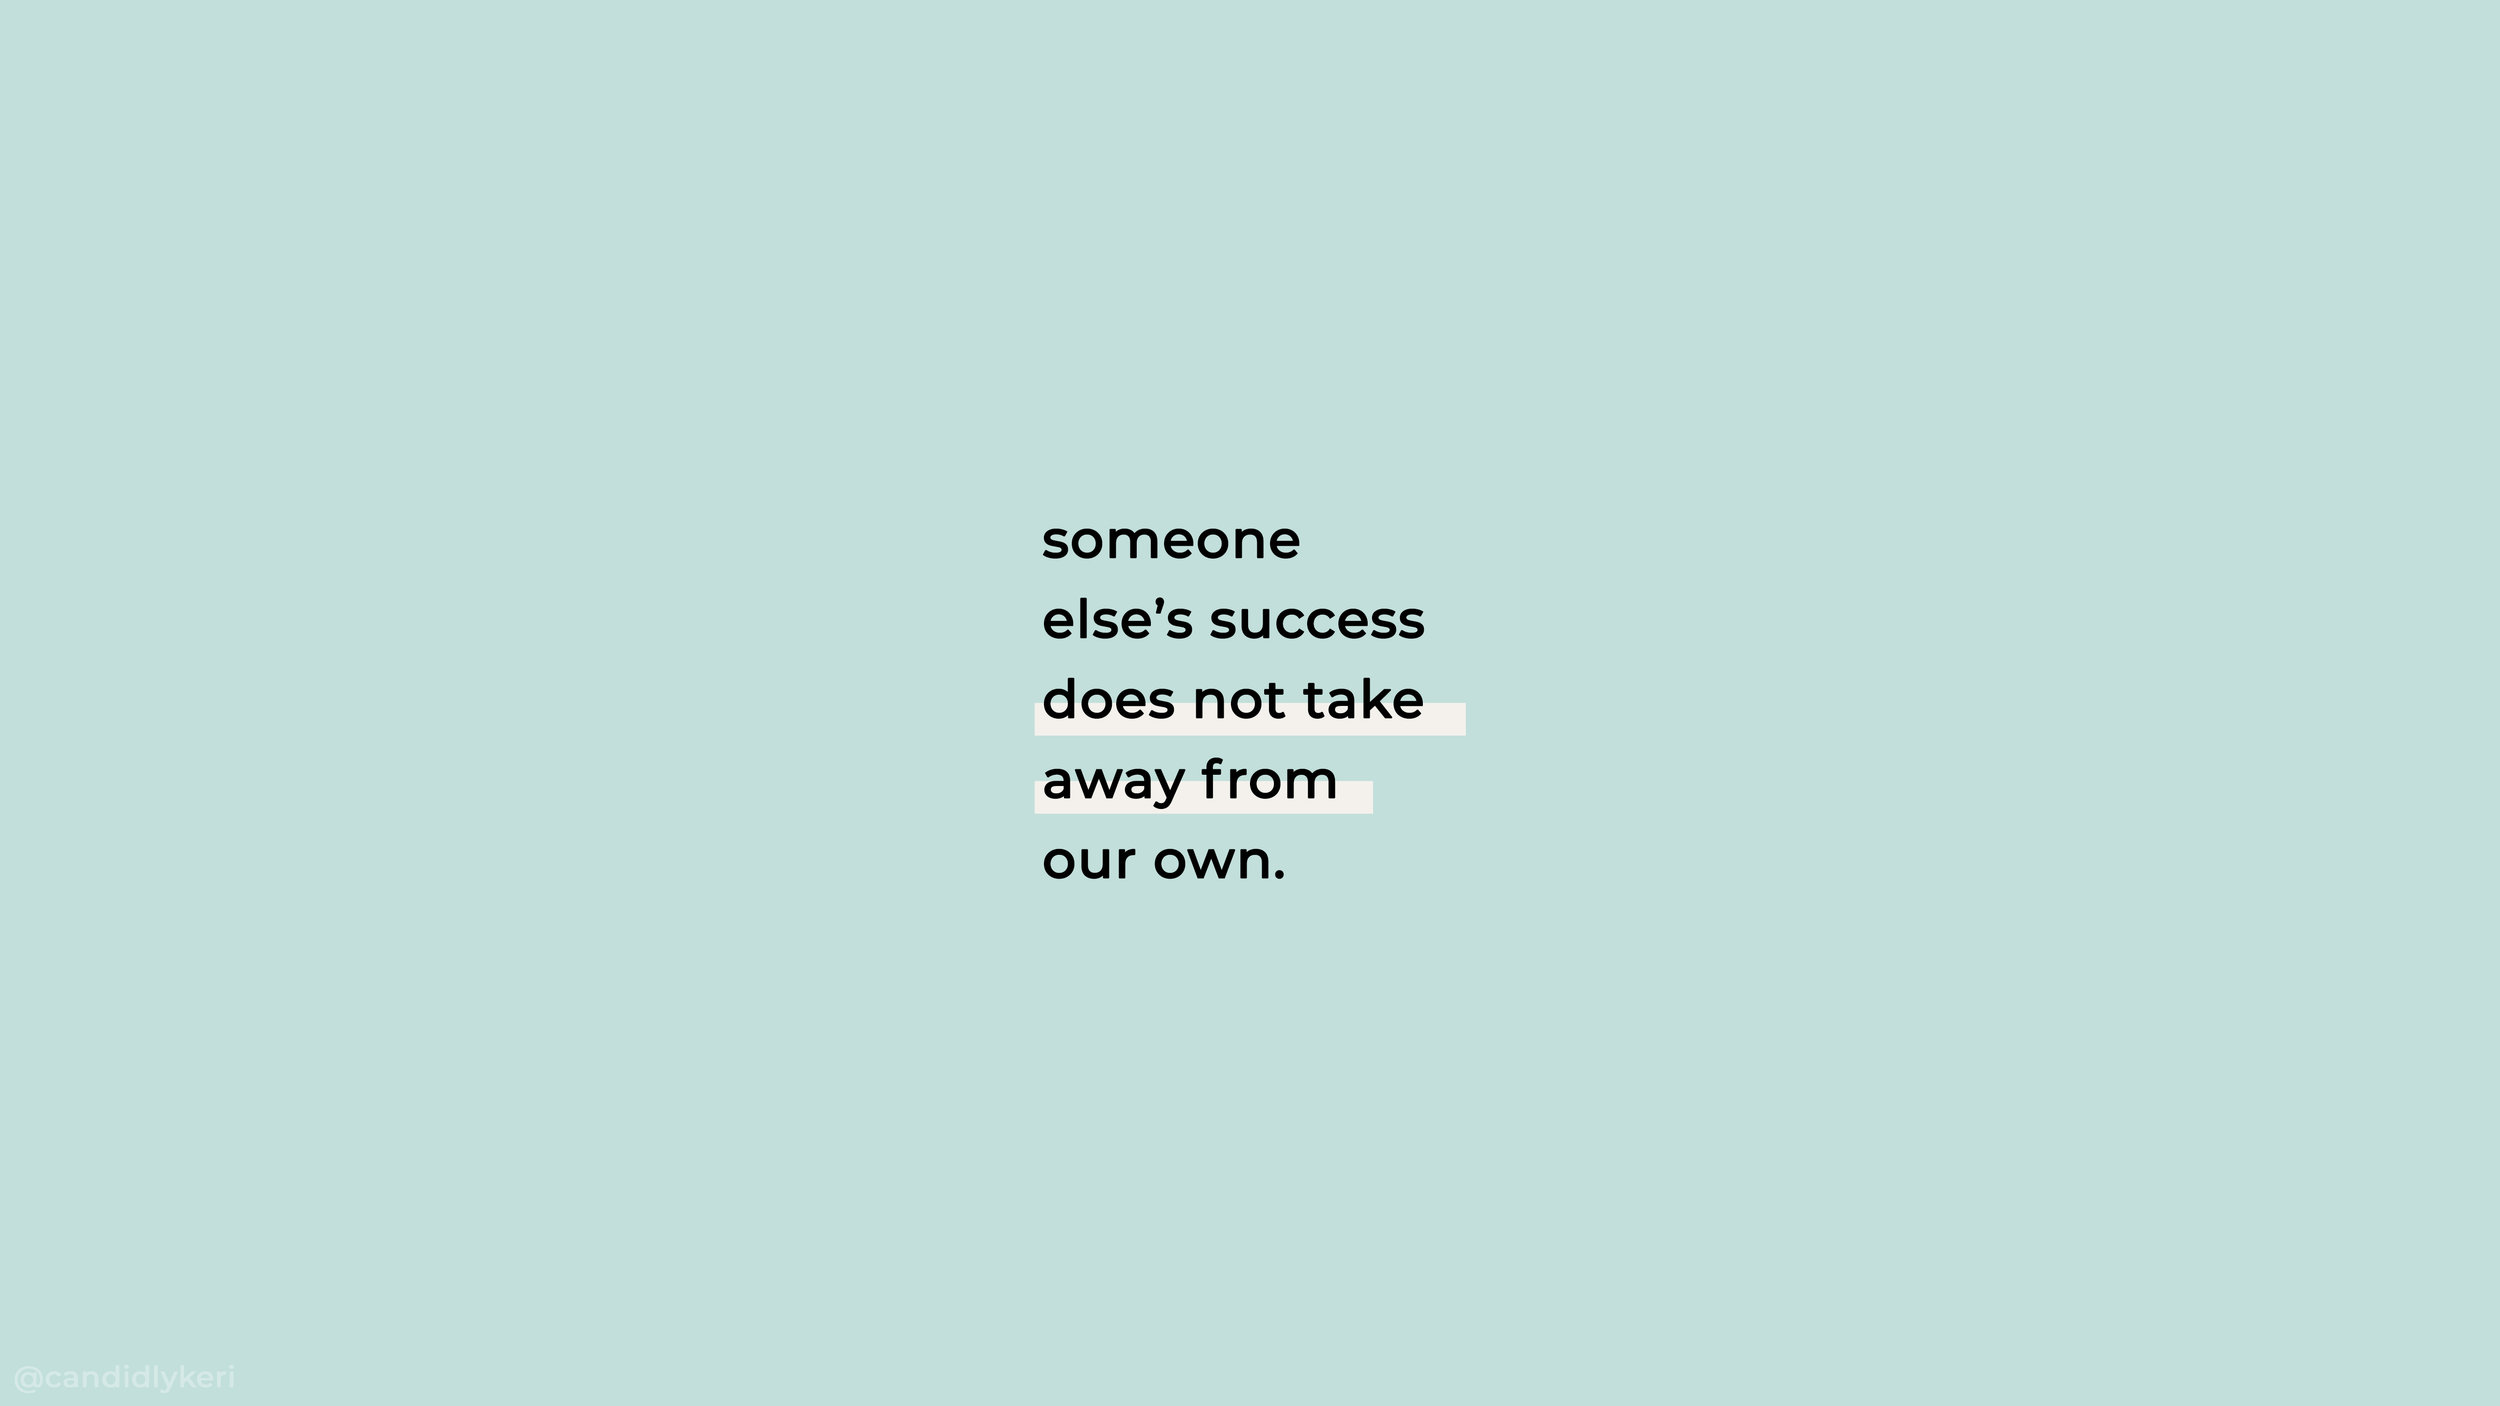 someone else's success does not take away from our own